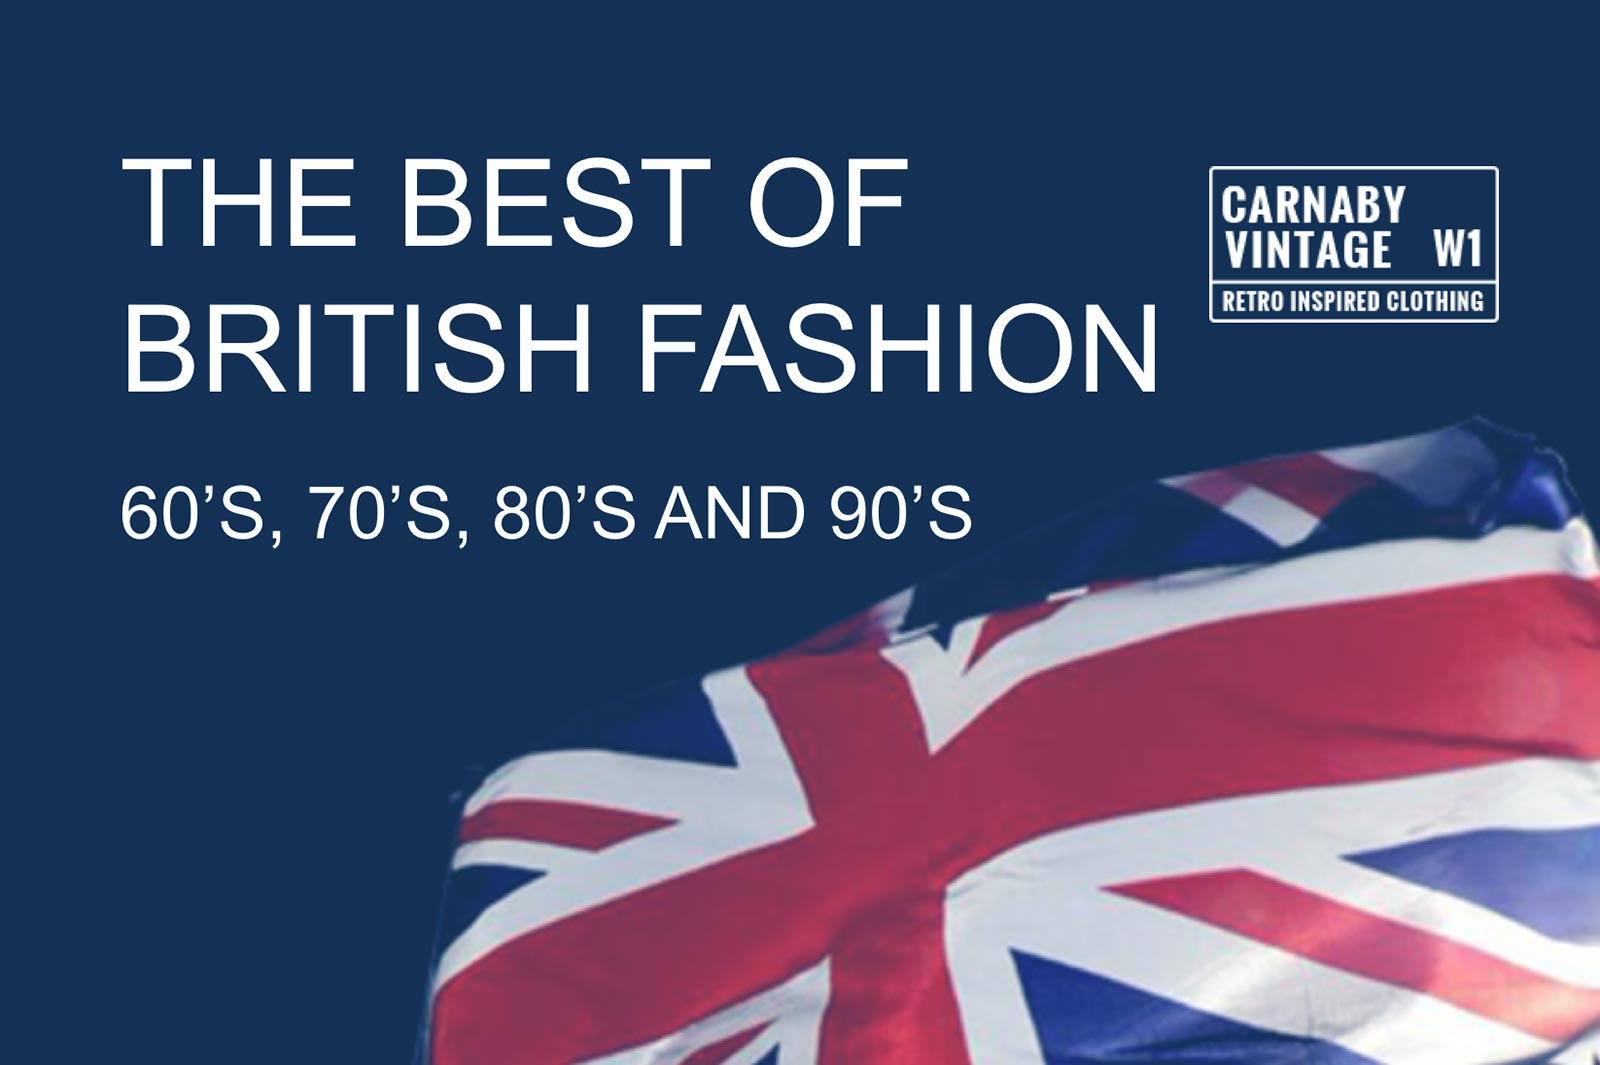 carnaby-vintage-banner